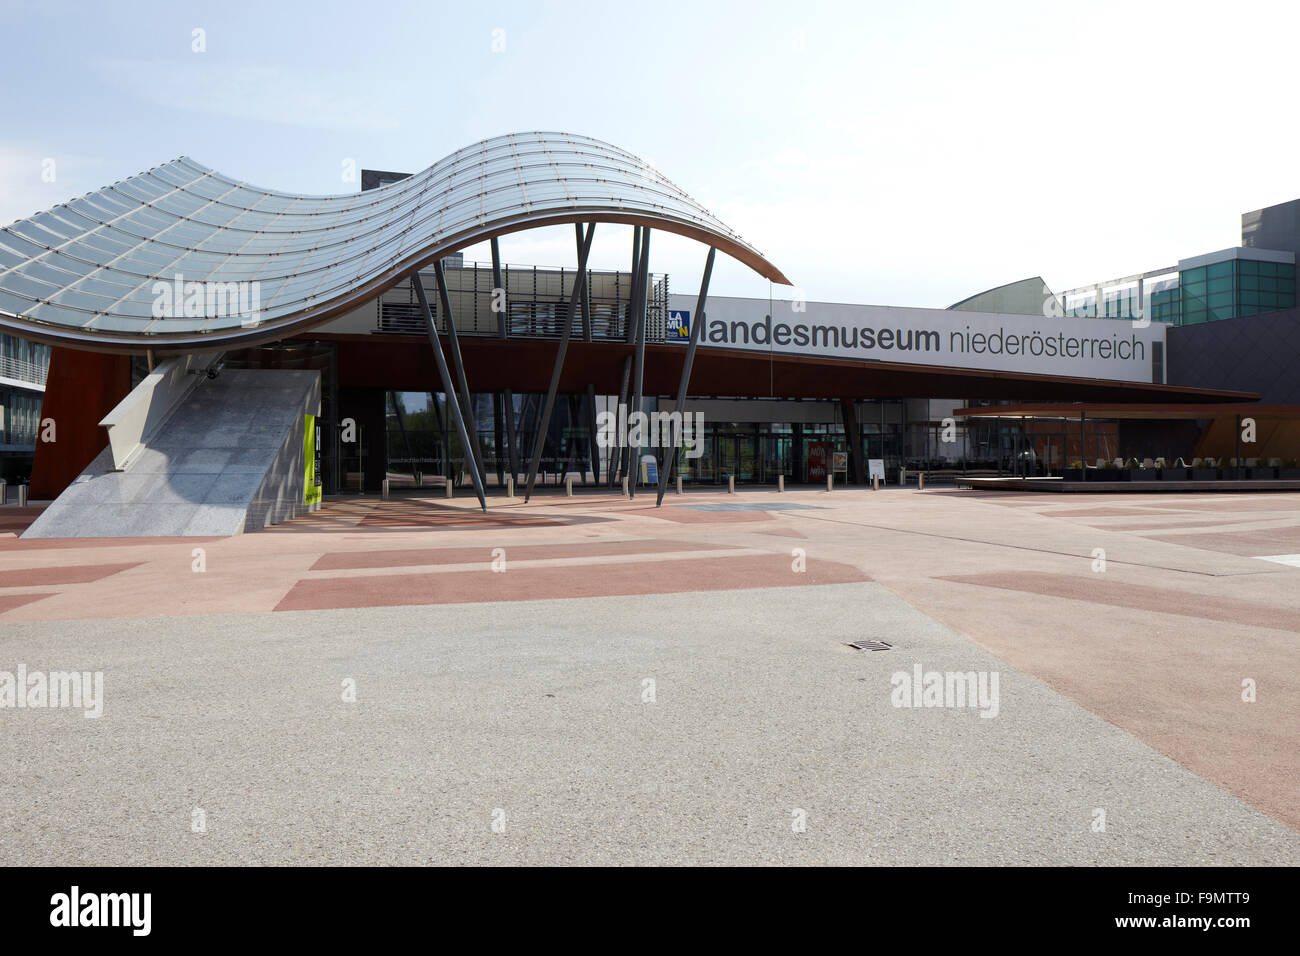 staatsmuseum st poelten lower austria curved canopy outside the stock photo 92042281 alamy. Black Bedroom Furniture Sets. Home Design Ideas